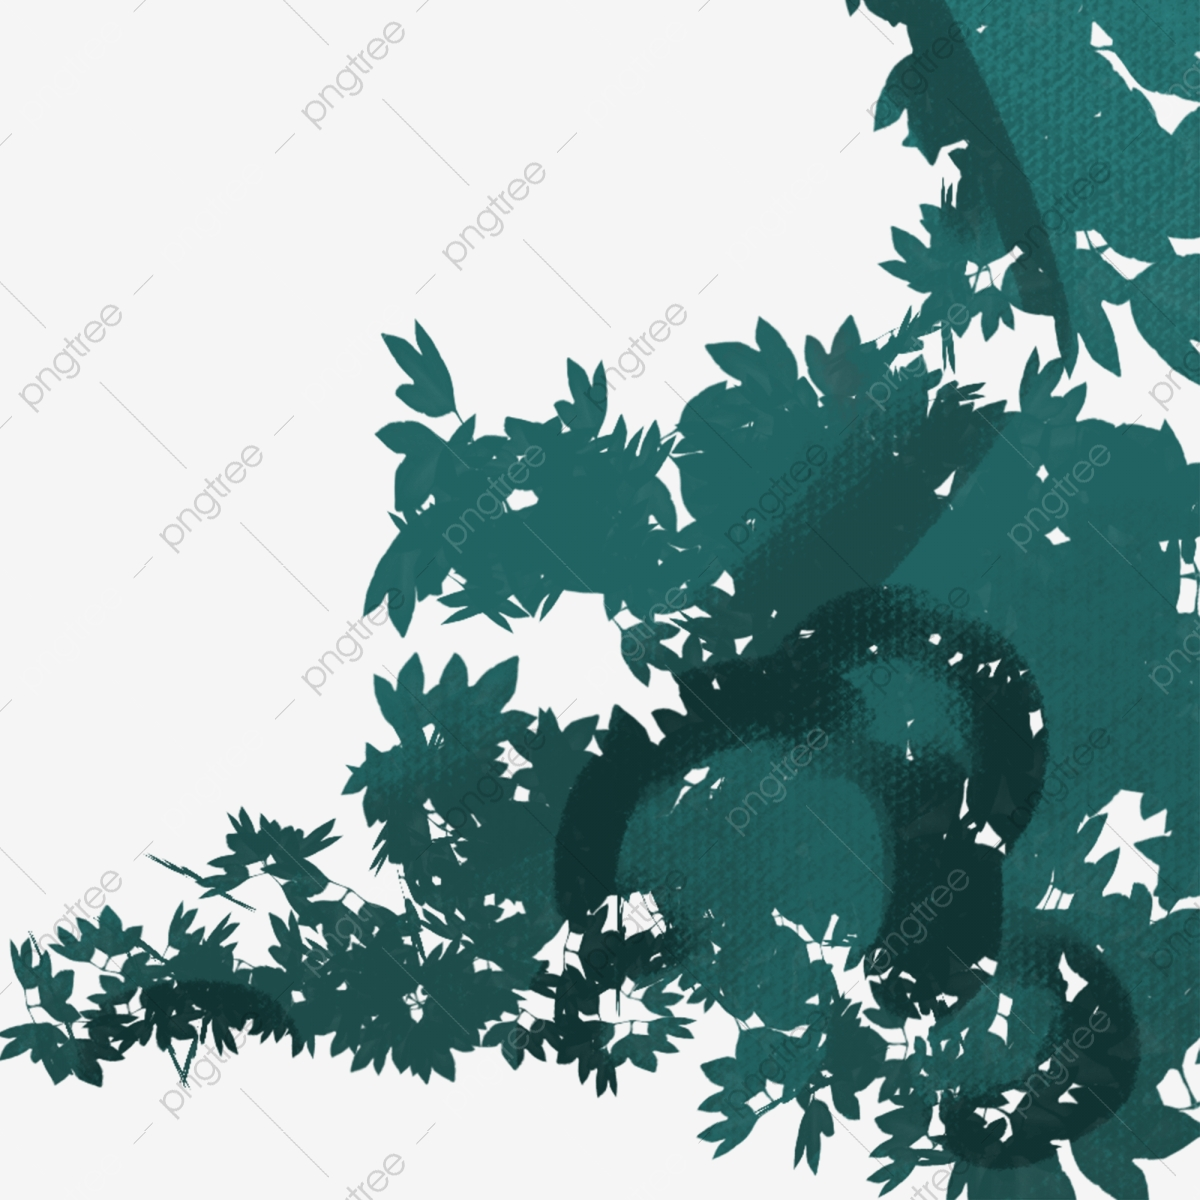 Fresh Big Tree Free Illustration Forest Trees Green Plants Ecological Plants Png Transparent Clipart Image And Psd File For Free Download